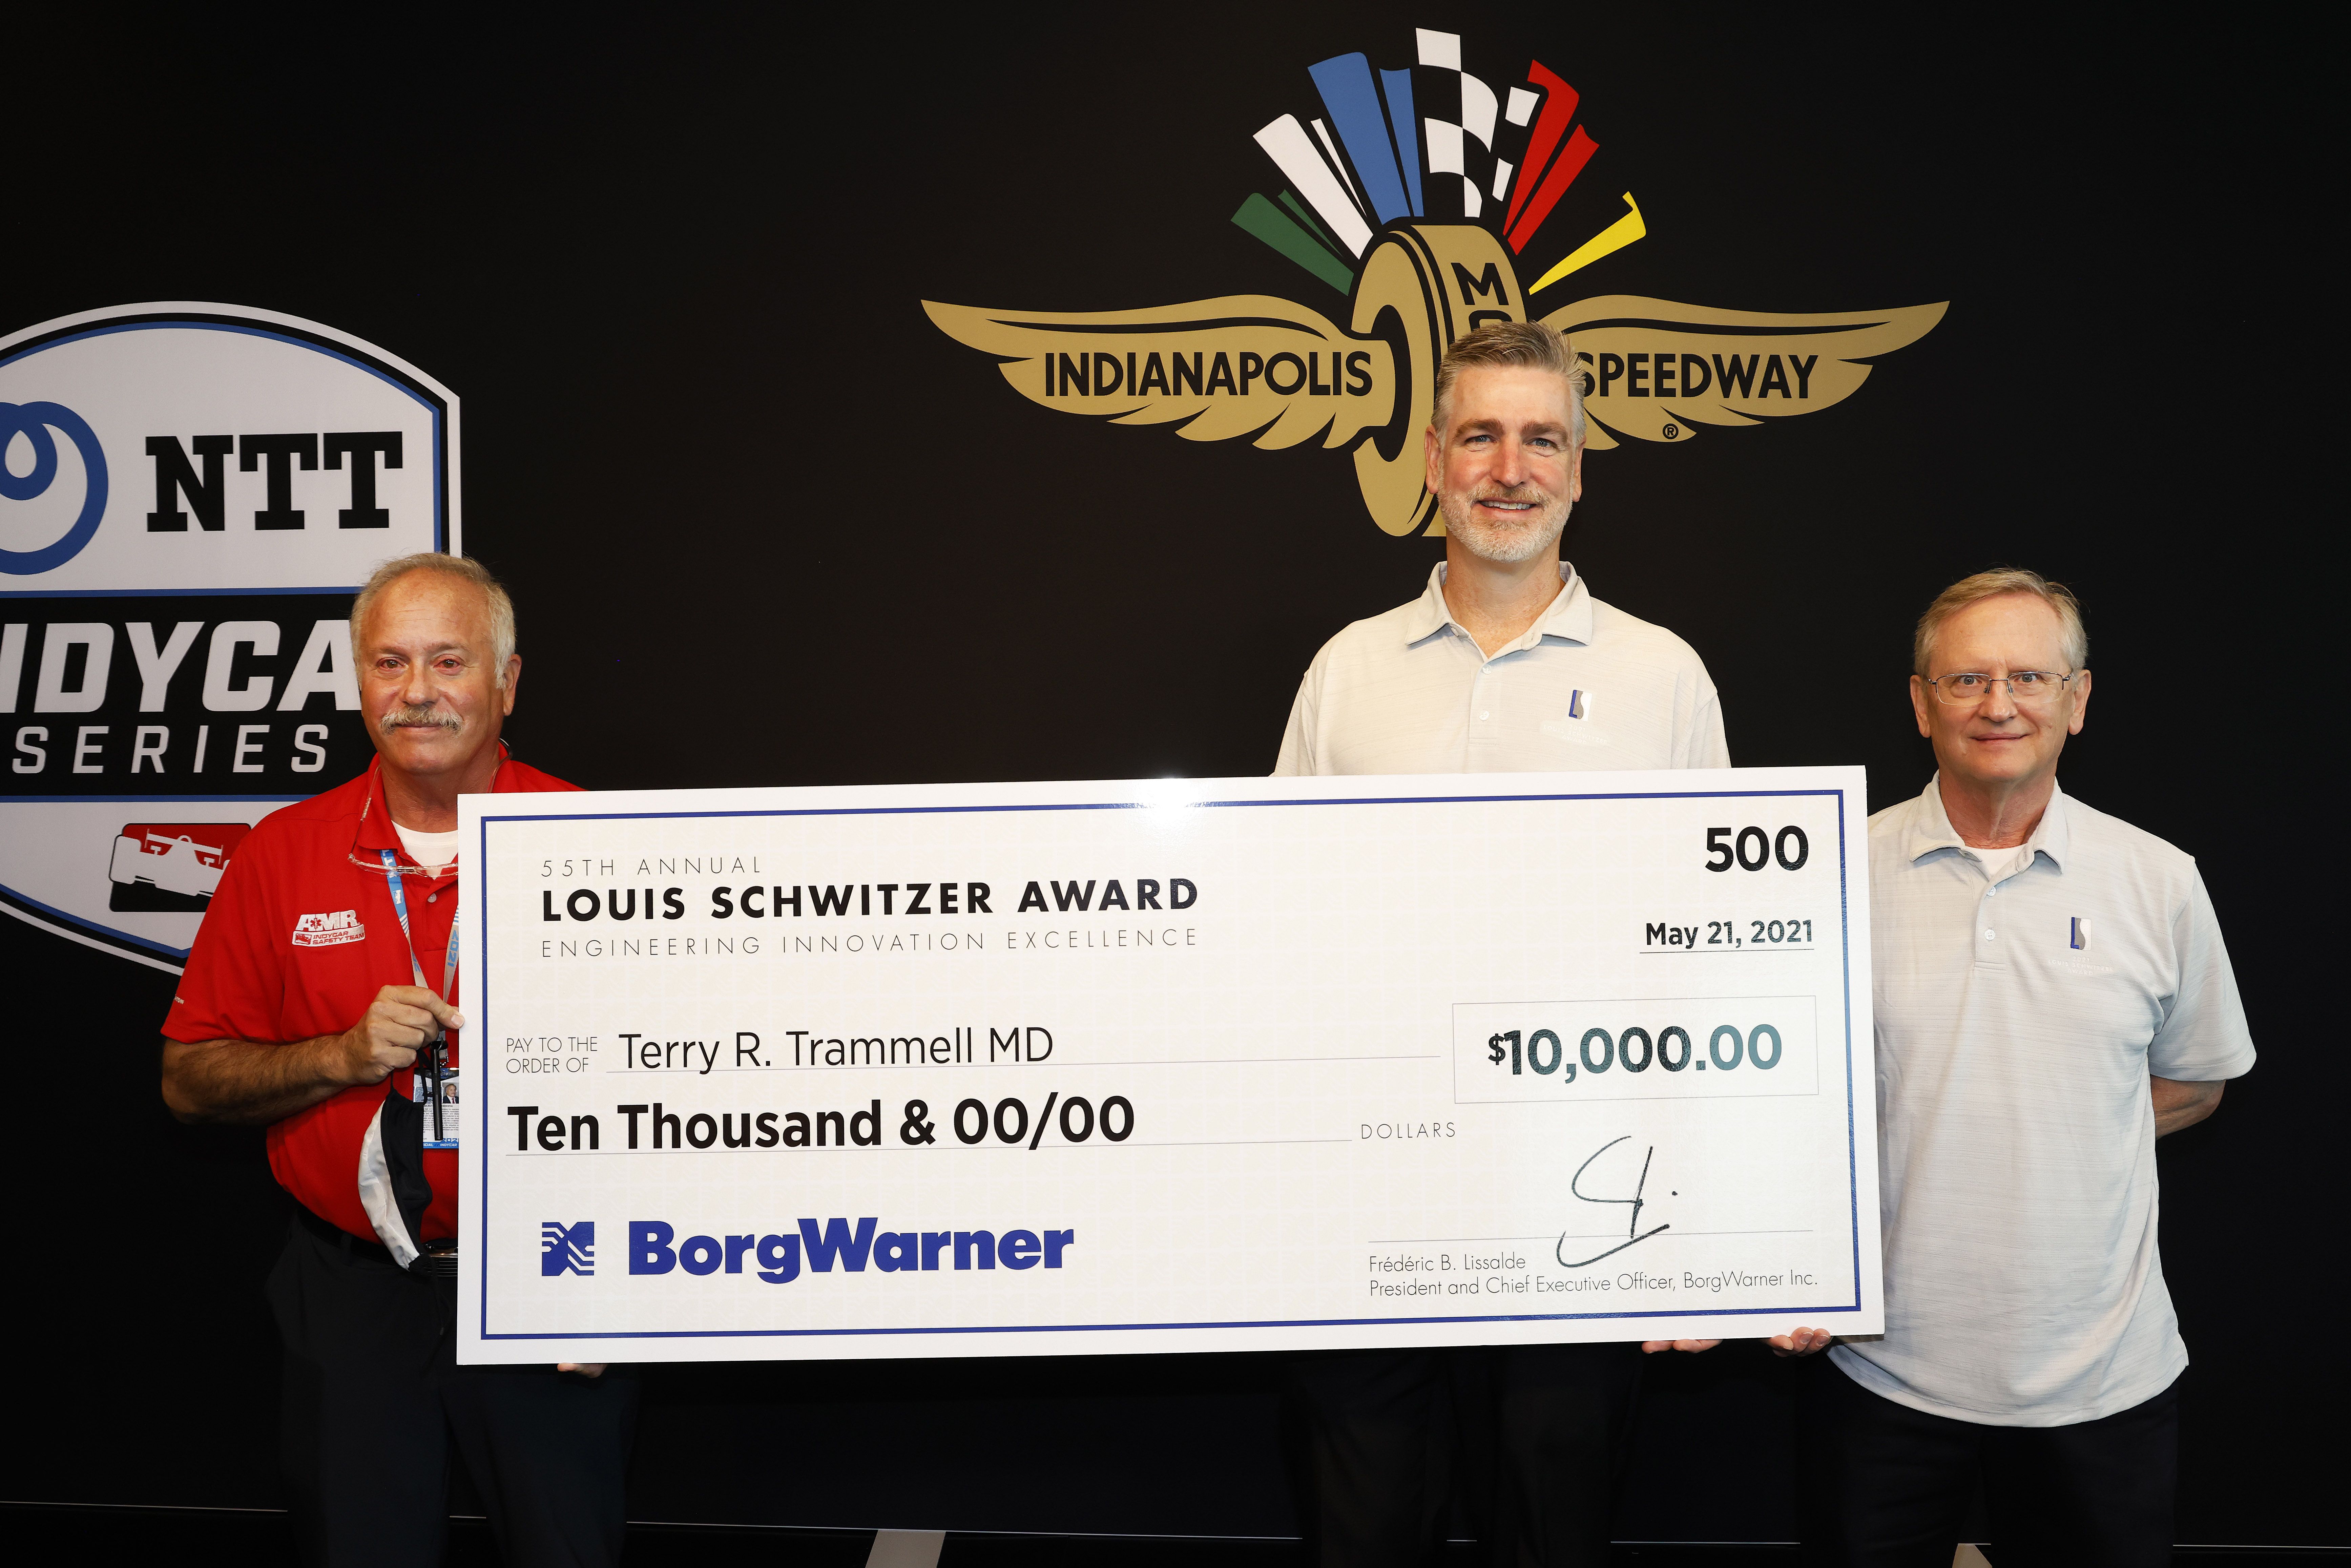 Three men stand holding large check in front of black, logo background